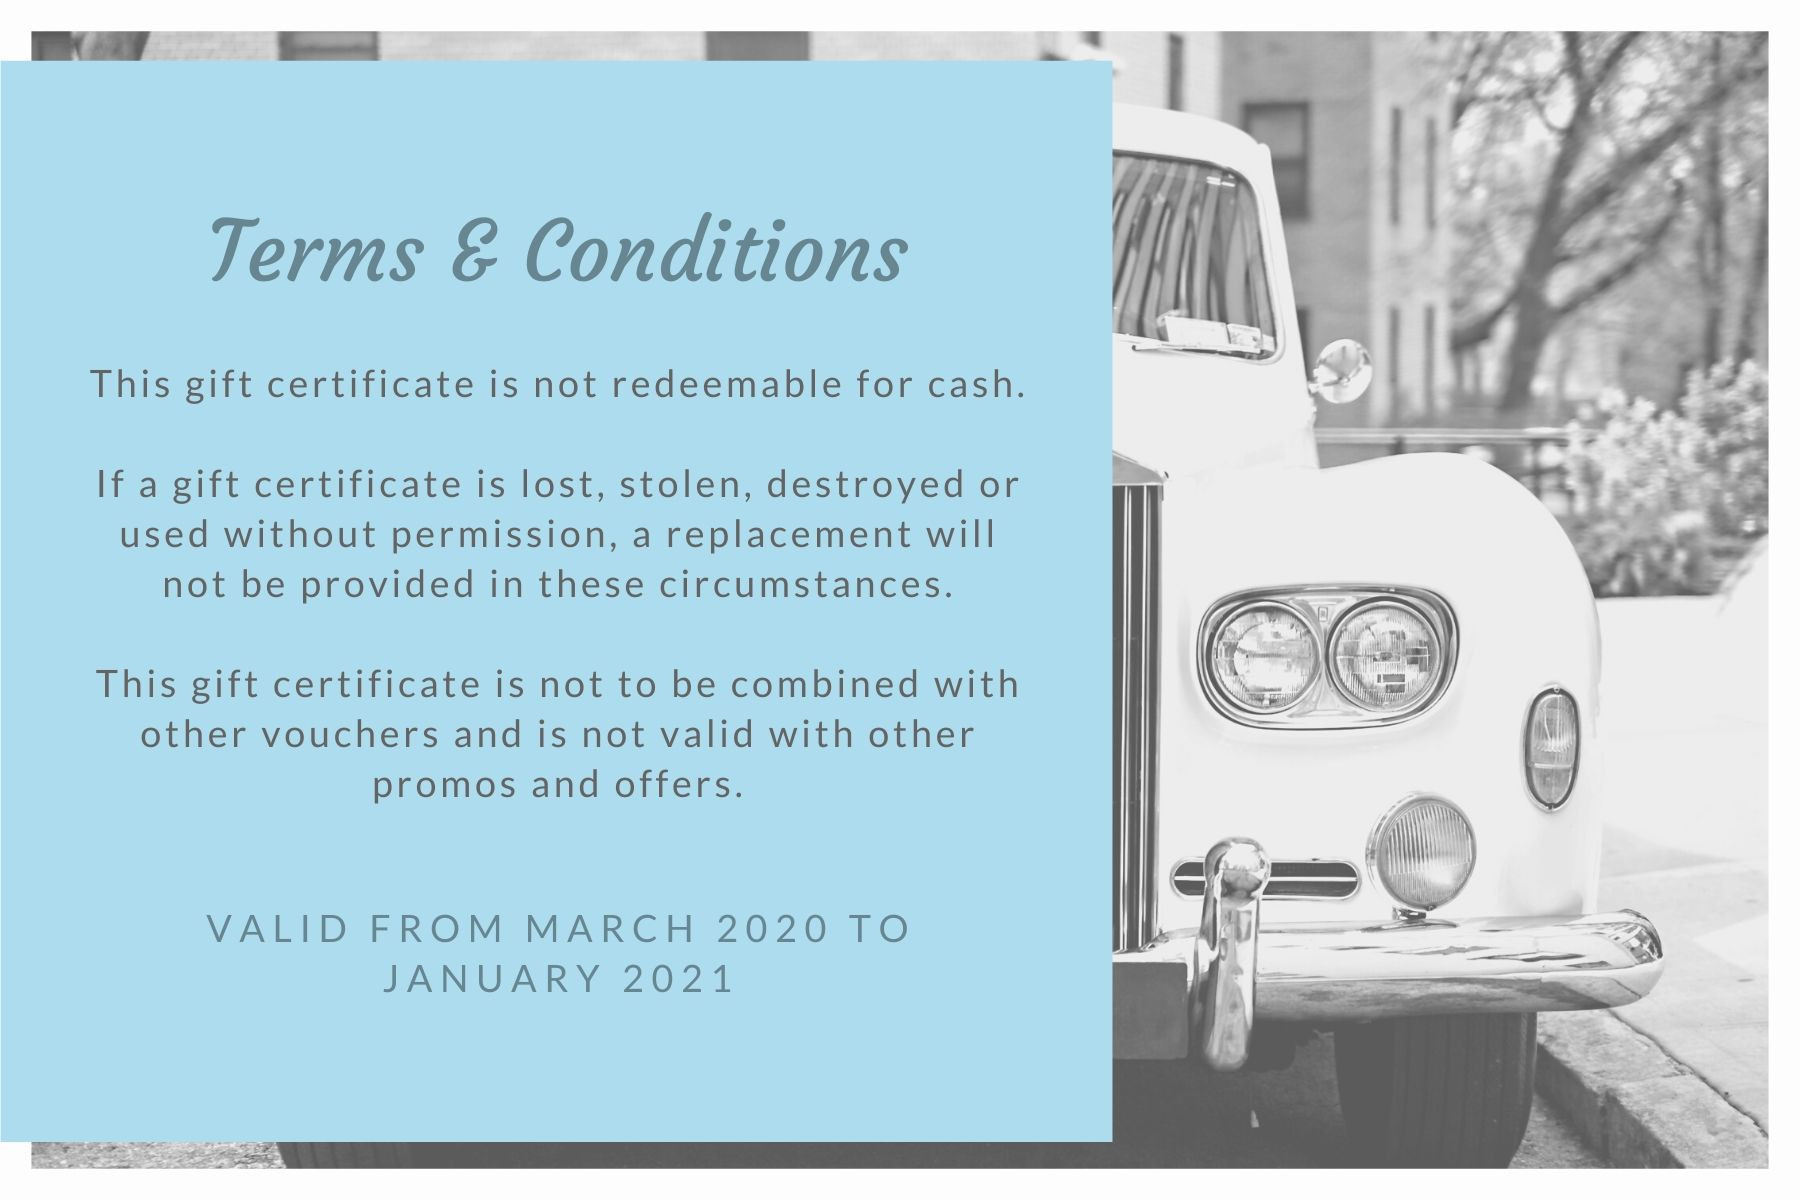 Wedding Gift Certificate Terms & Conditions